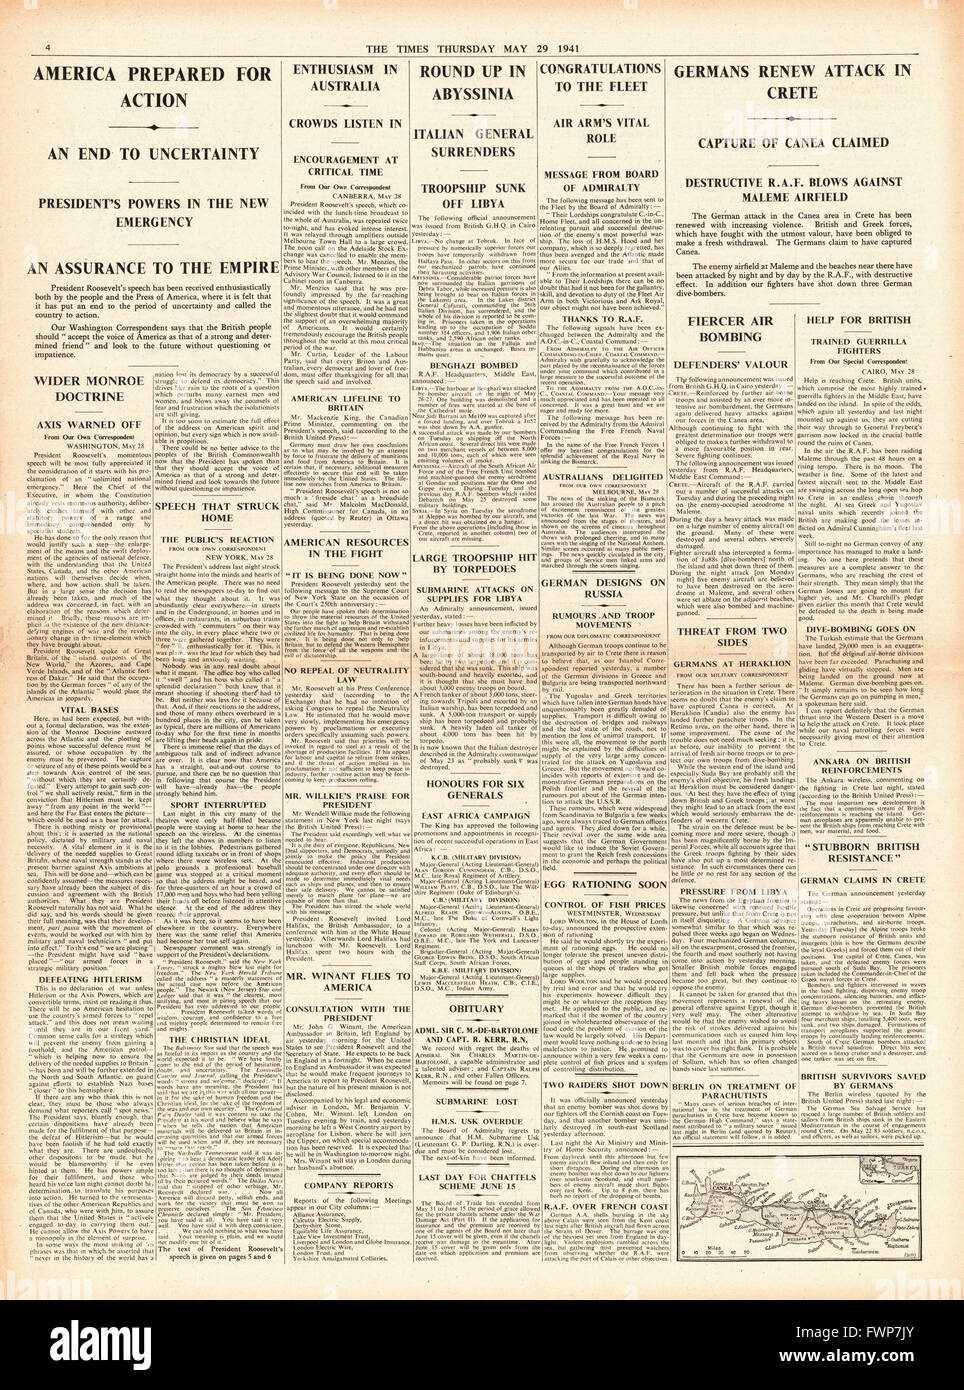 1941 page 4 The Times Roosevelt says America prepared for action and battle for Crete Stock Photo